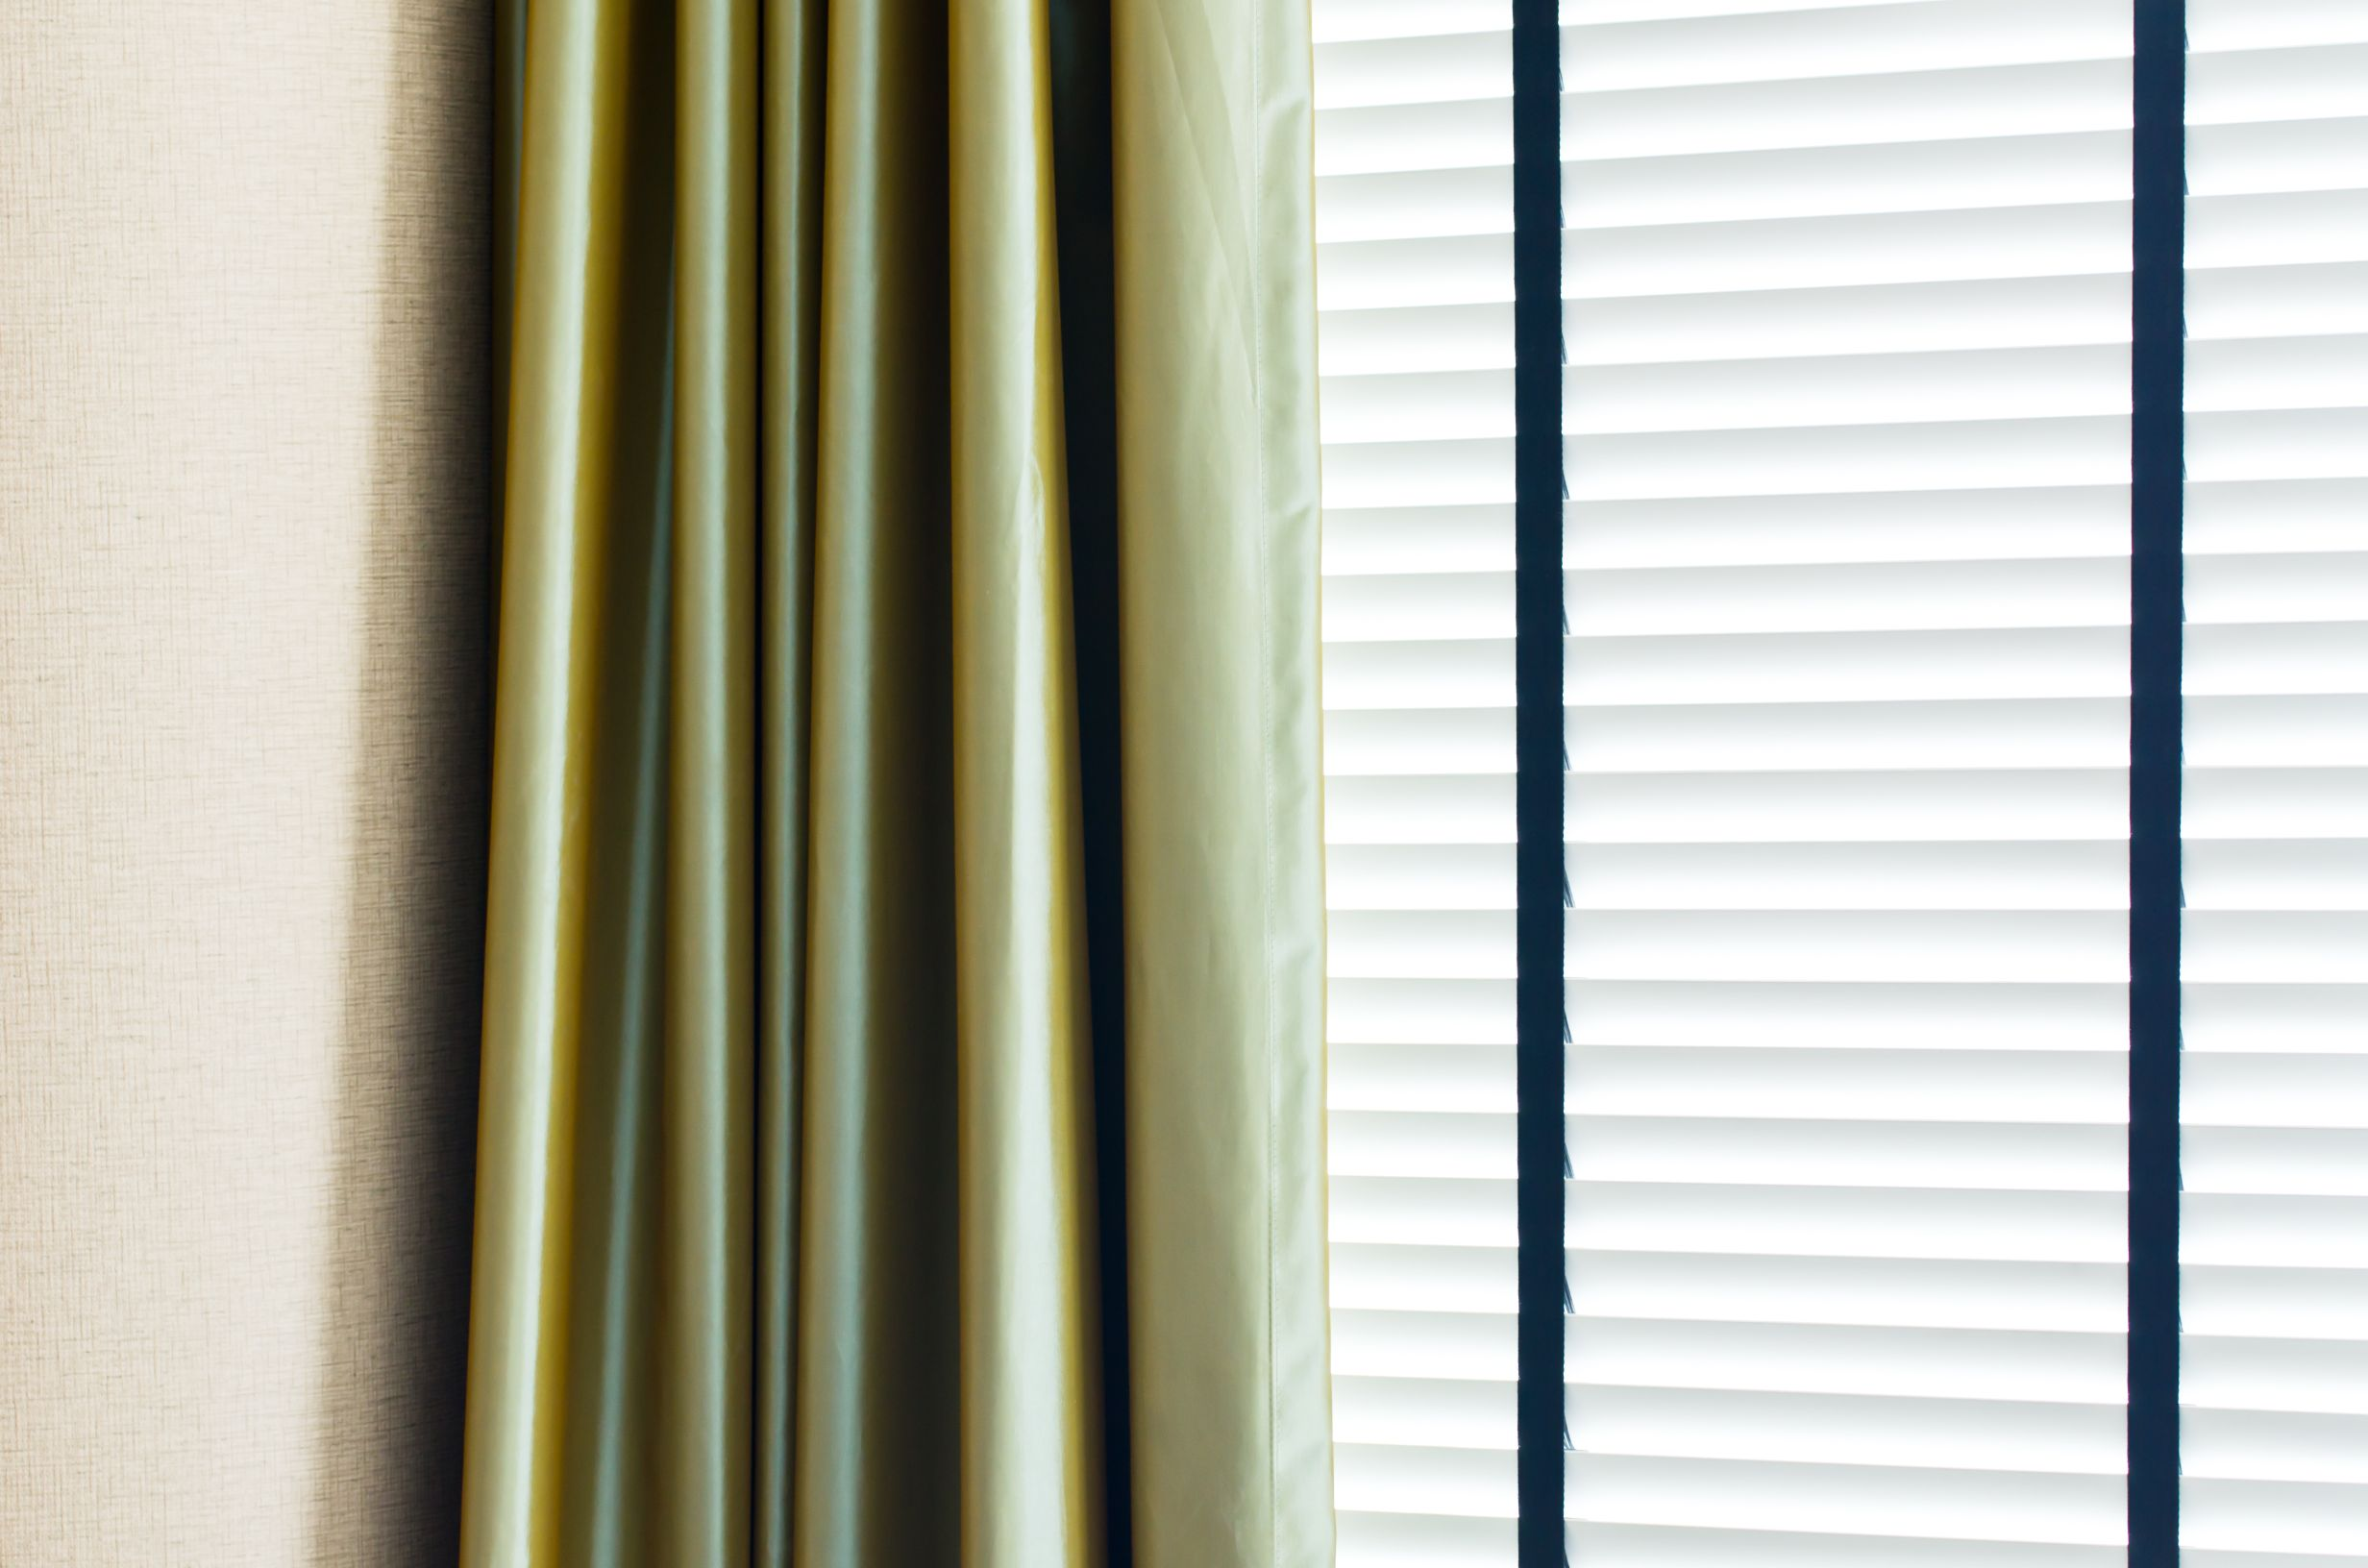 Const - Window Cov & blinds